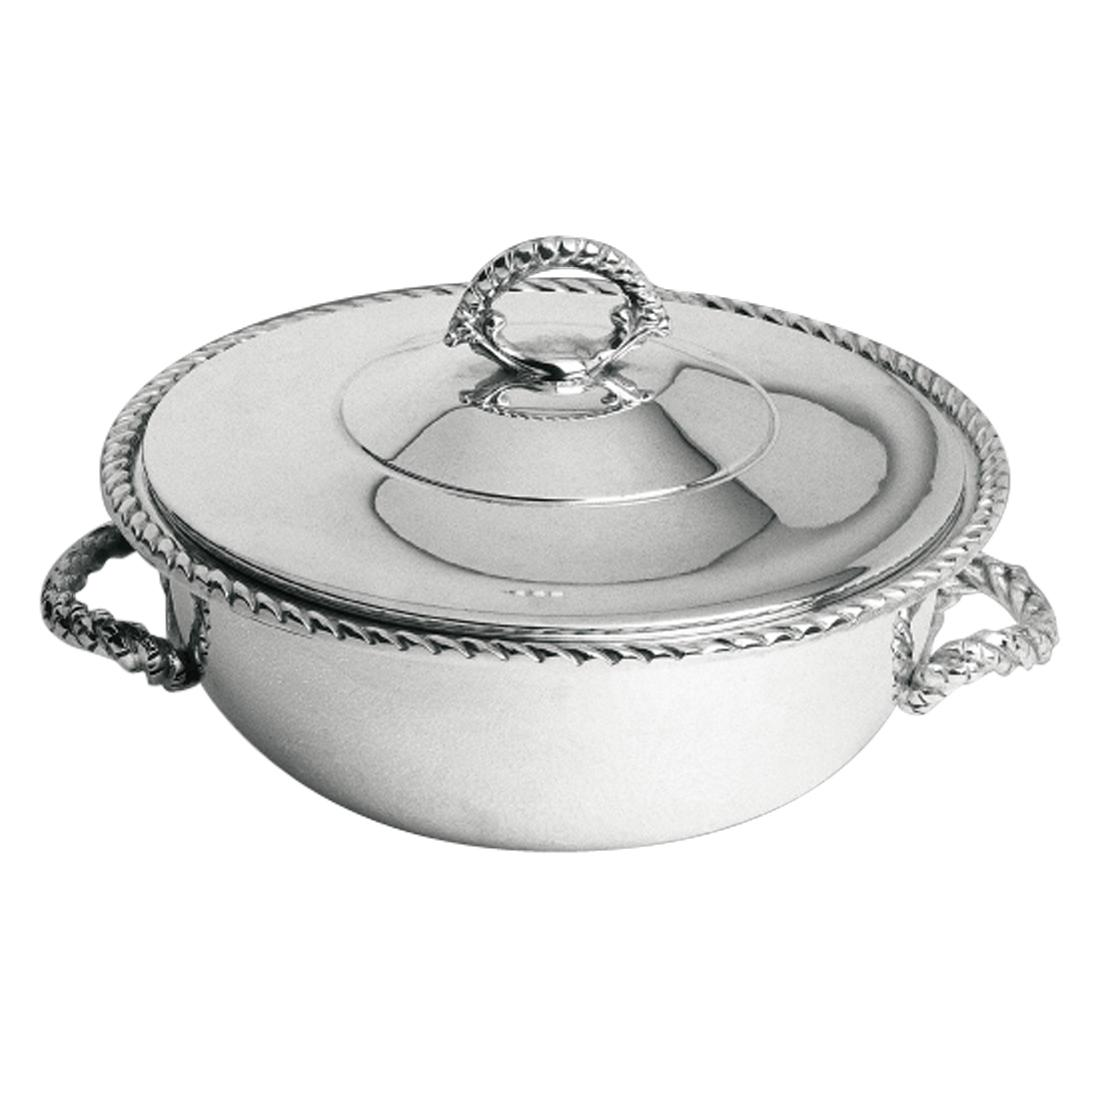 9.5-Inch Vegetable Bowl with Cover in Rope